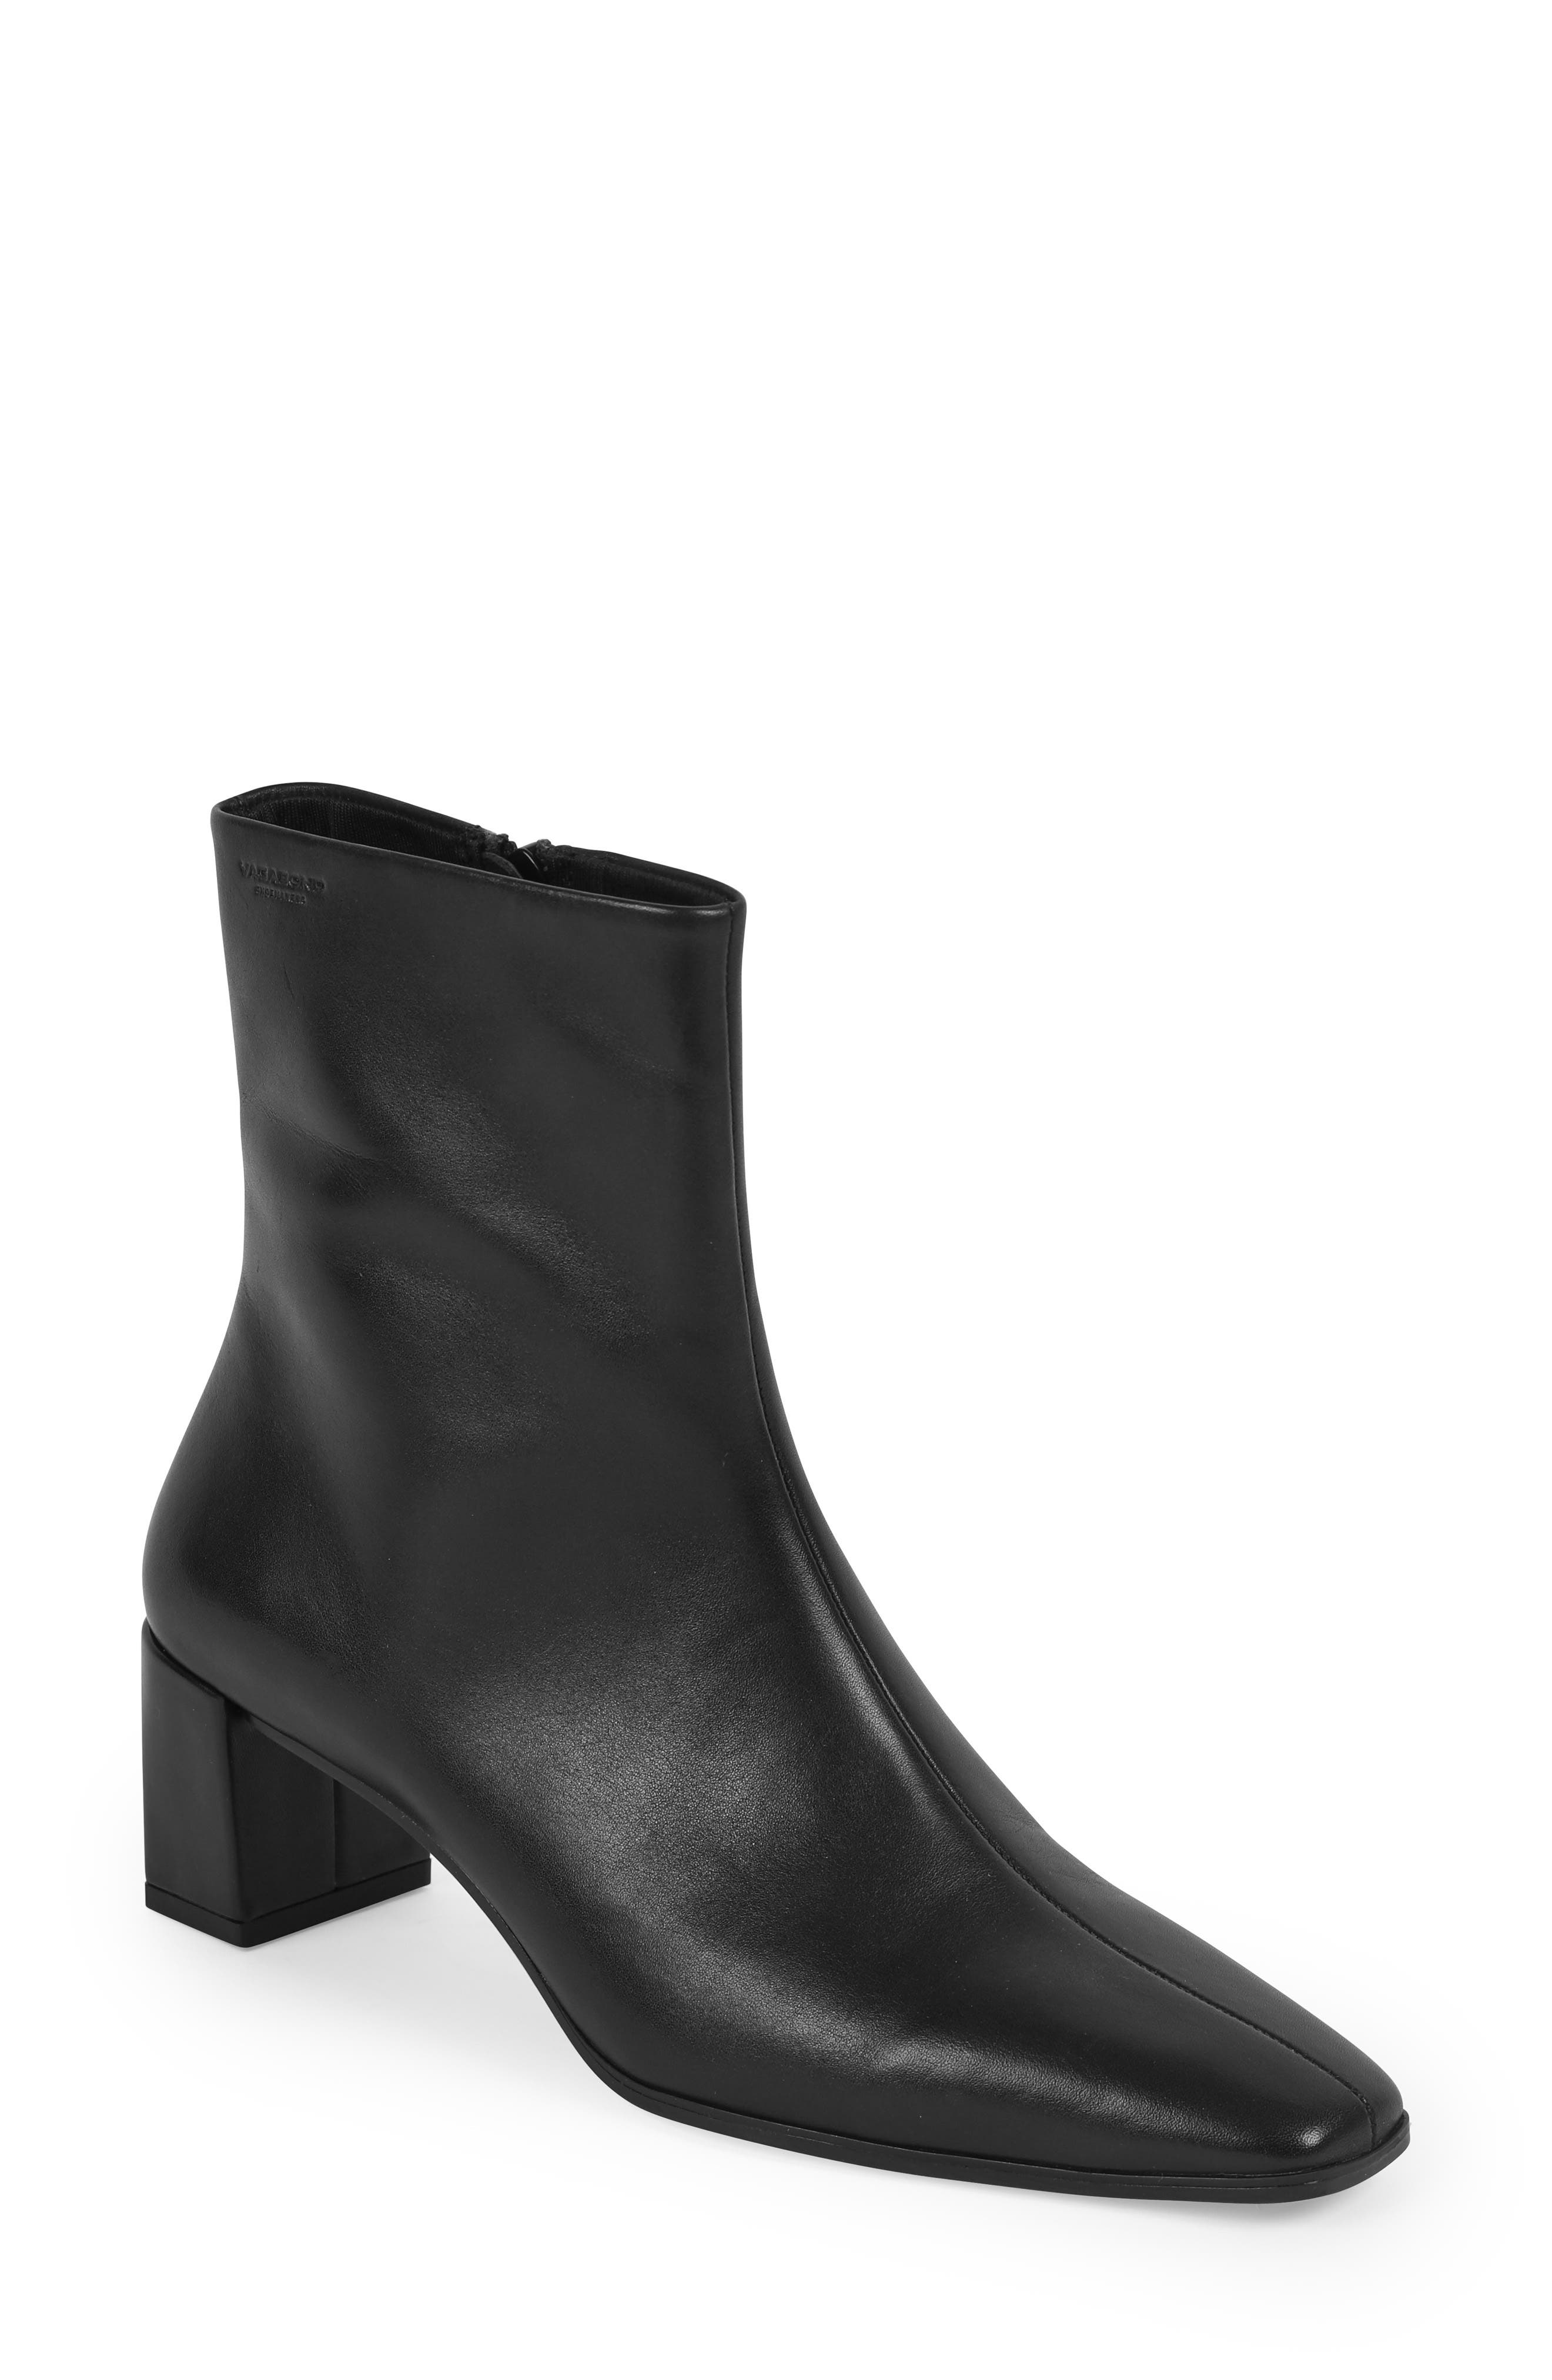 Tessa Square Toe Boot by Vagabond Shoemakers, available on nordstrom.com for $175 Gigi Hadid Shoes Exact Product